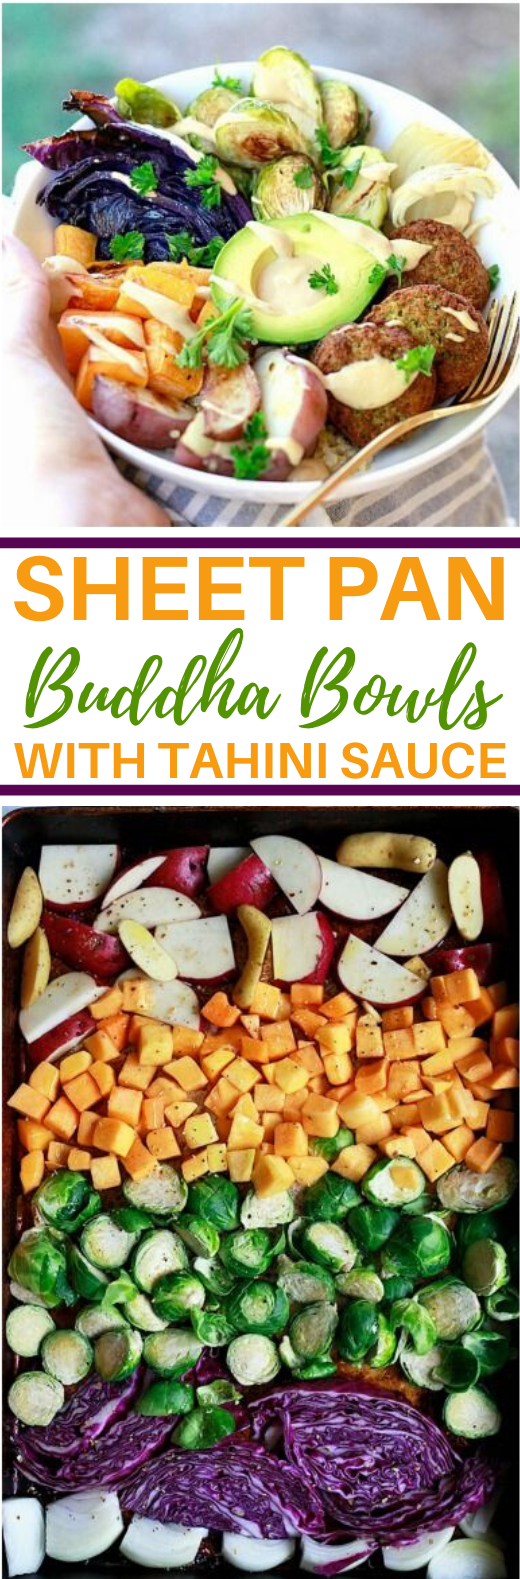 Sheet Pan Buddha Bowls with Tahini Sauce #vegetarian #healthy #vegan #glutenfree #dinner